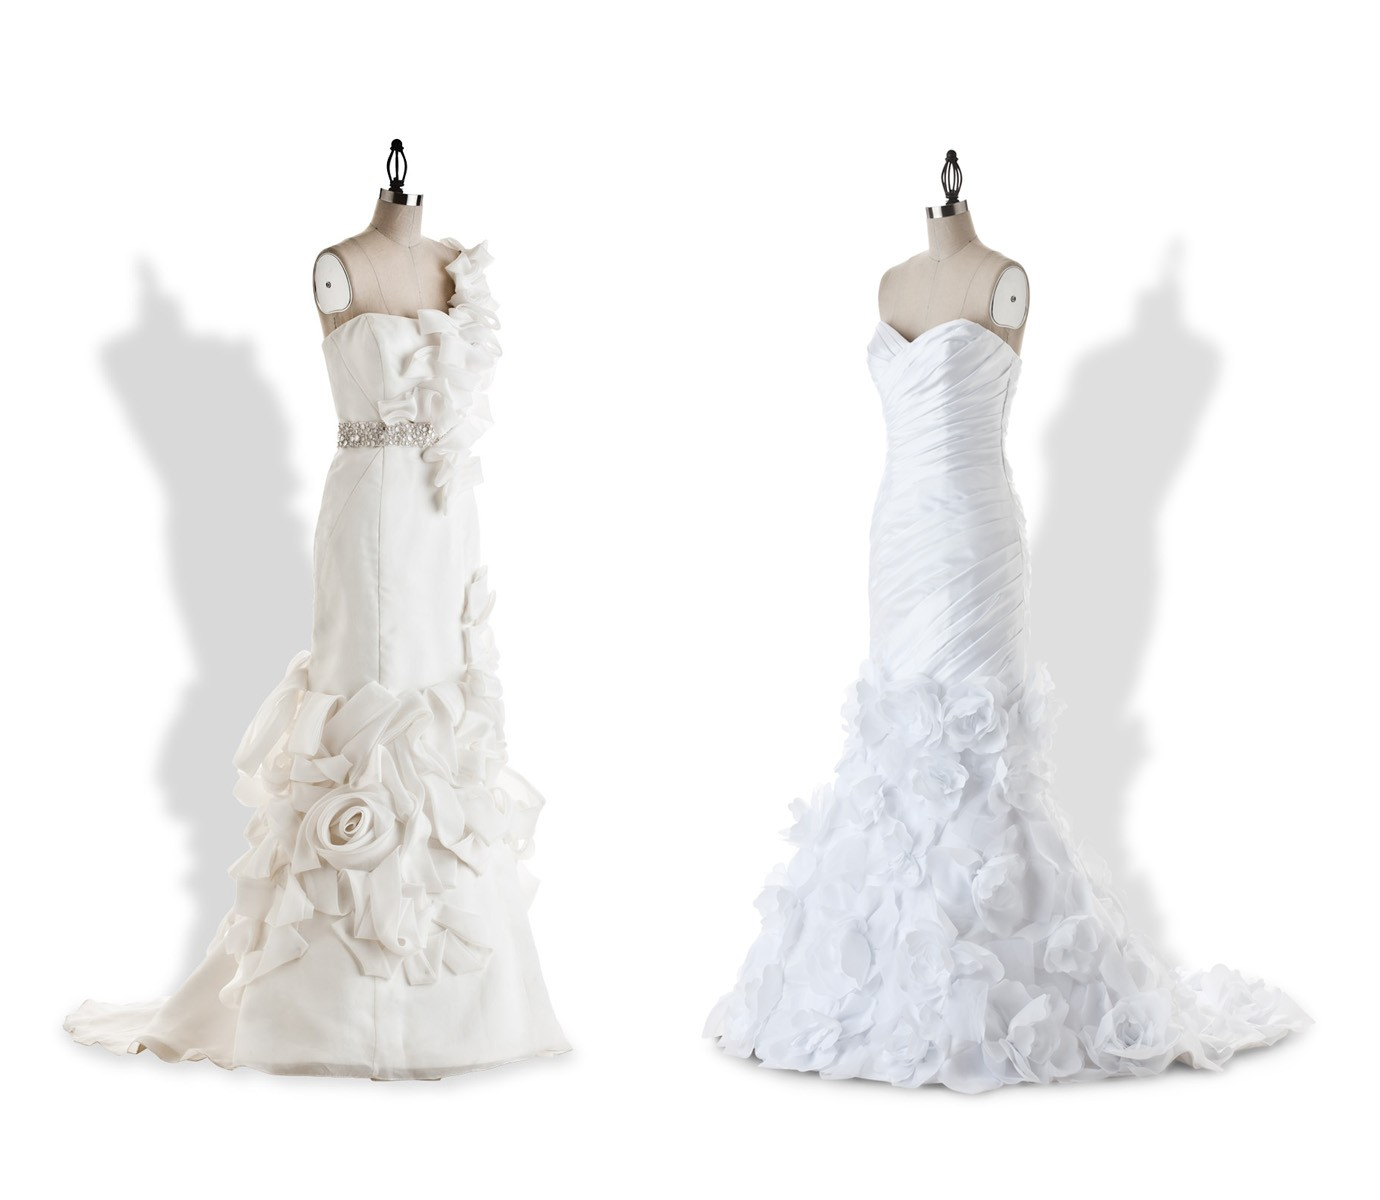 Wedding-Dress-Photography-on-Mannequin Apparel